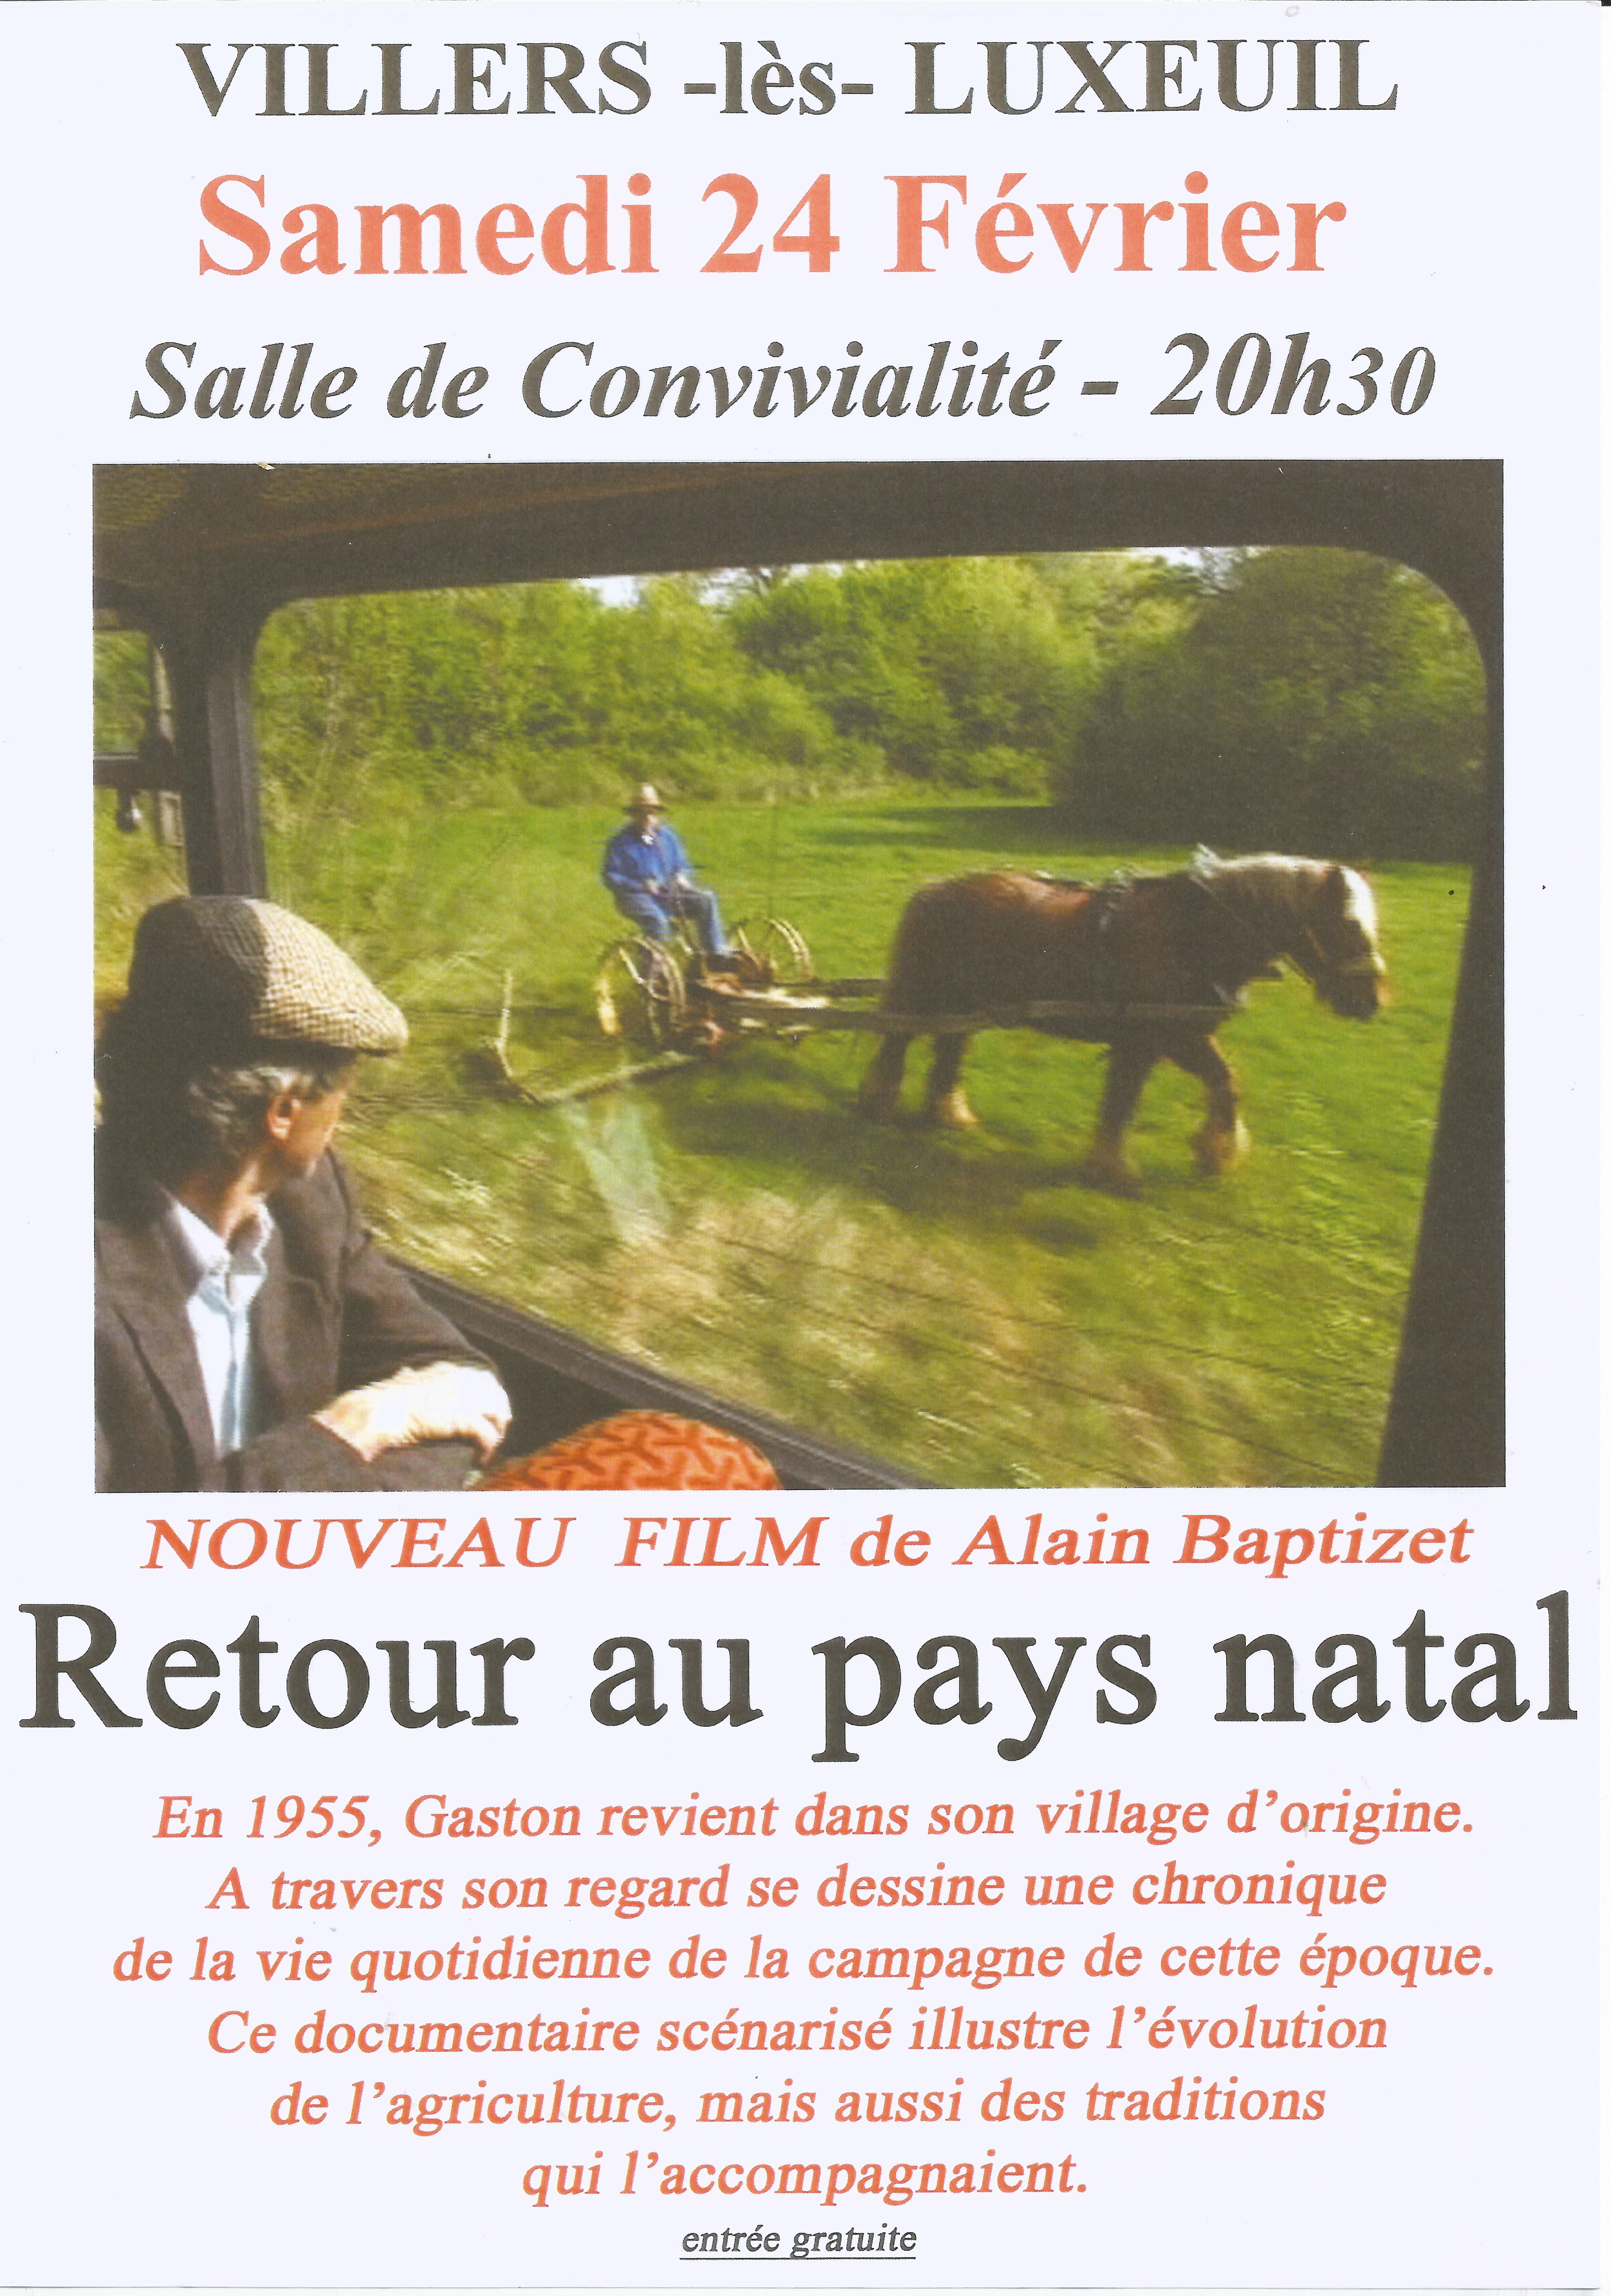 https://www.villers-les-luxeuil.com/projets/villers/files/images/2018_Flyers_Tracts/2018_02_24_Baptizet.jpg